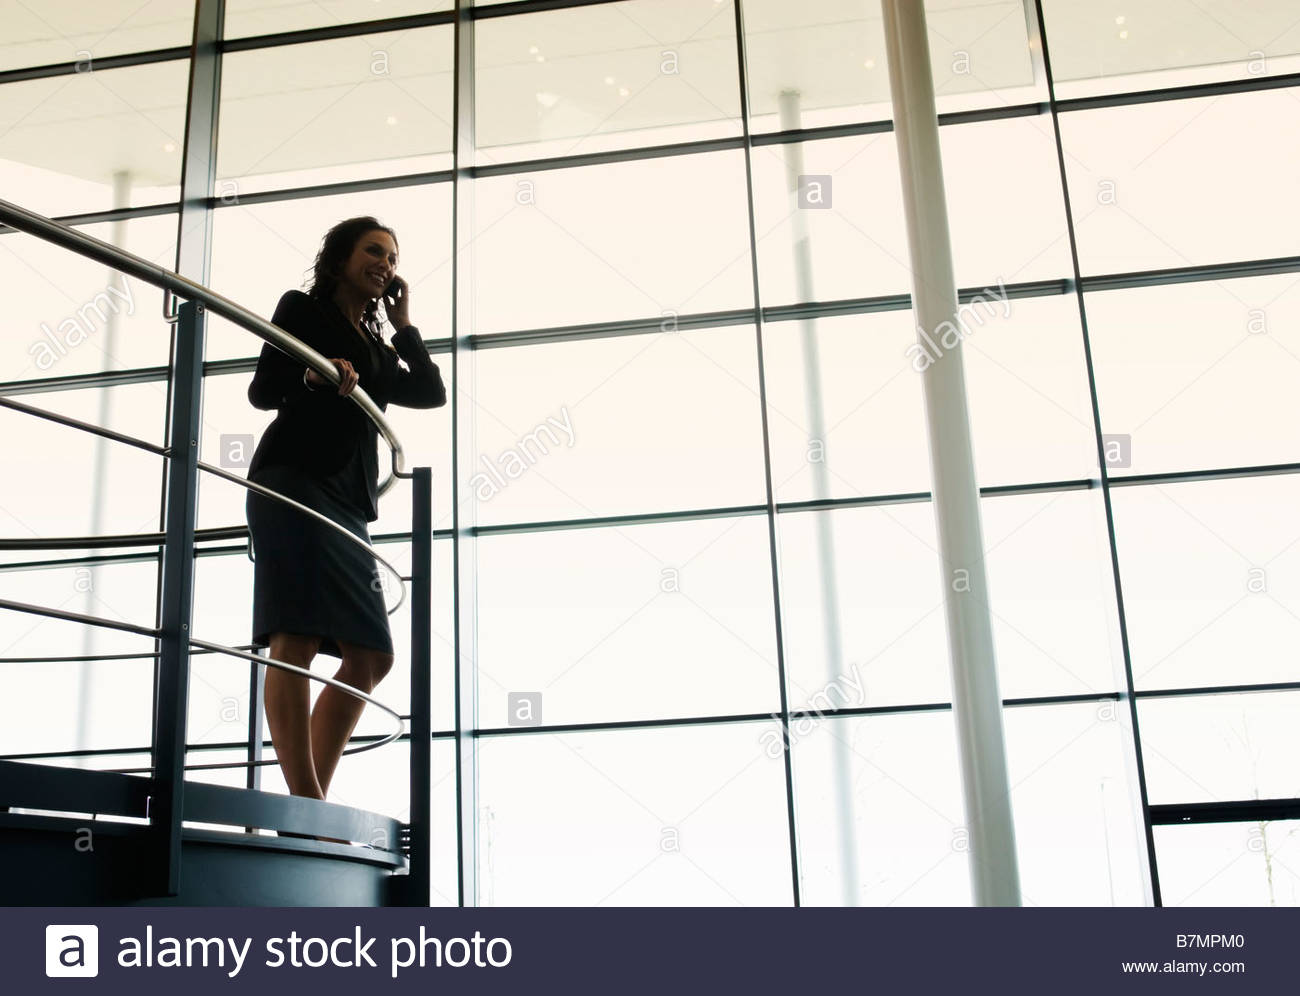 A businesswoman talking on a mobile phone in a modern office building Stock Photo